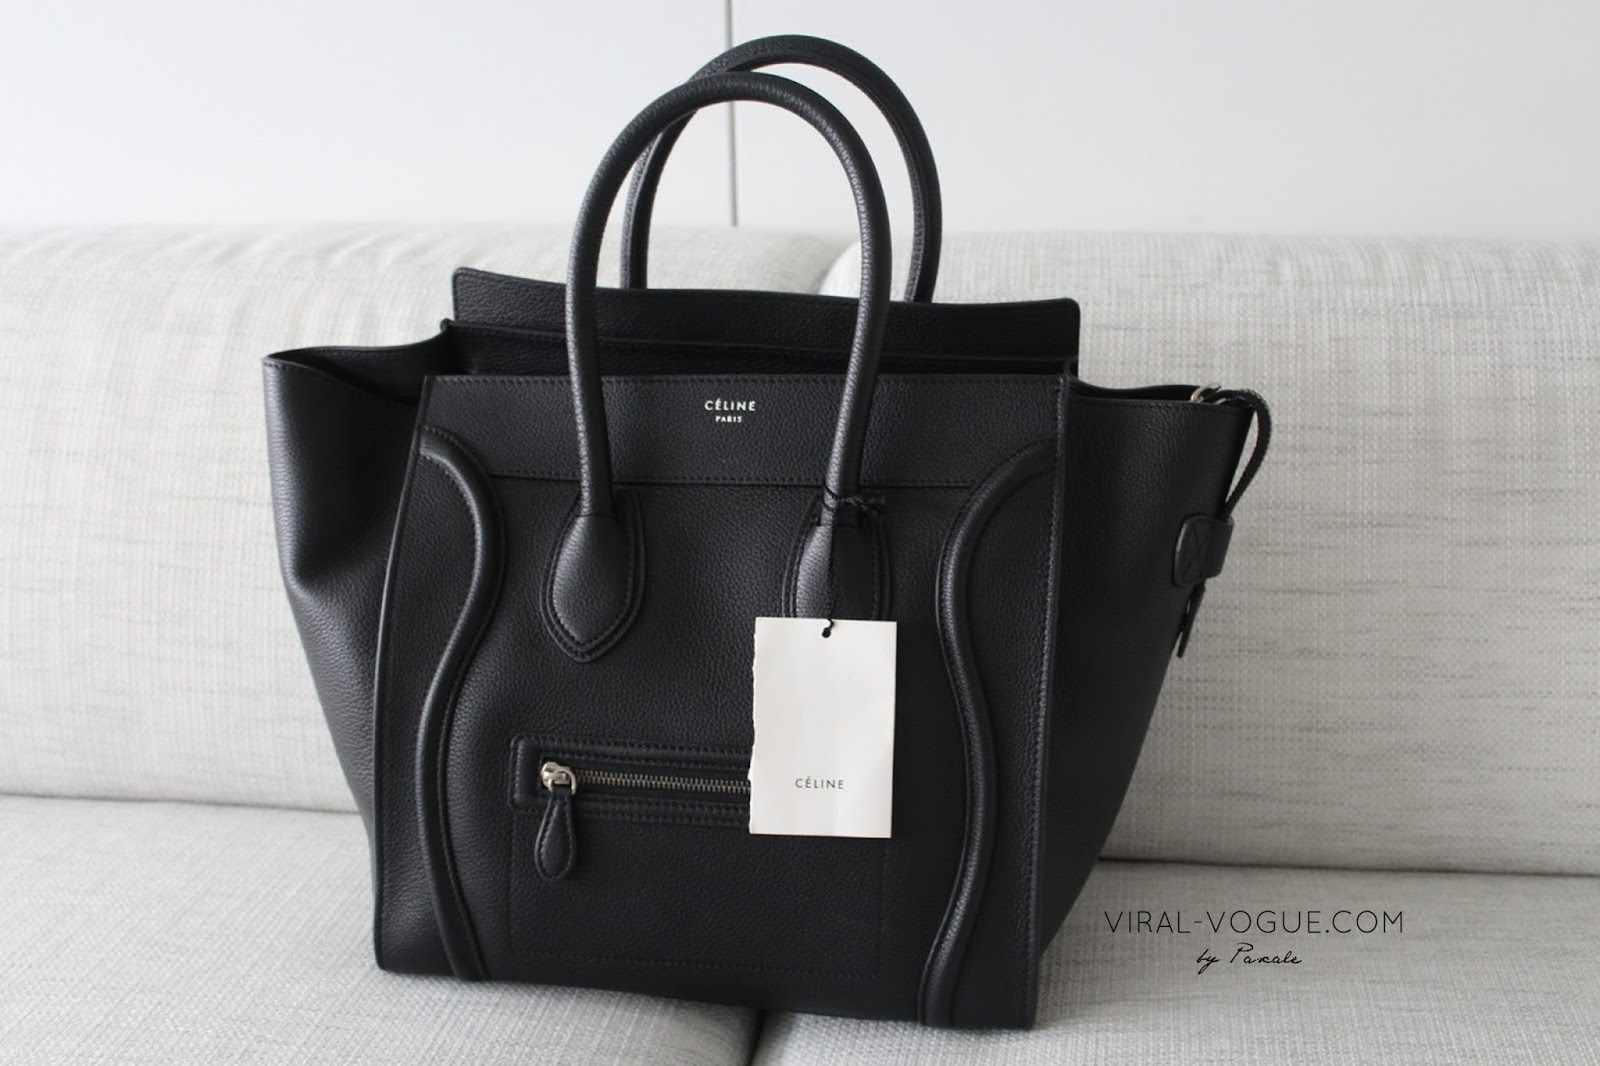 celine nano tote - VIRAL-VOGUE: C��line Luggage comparison & review (C��line Mini X ...